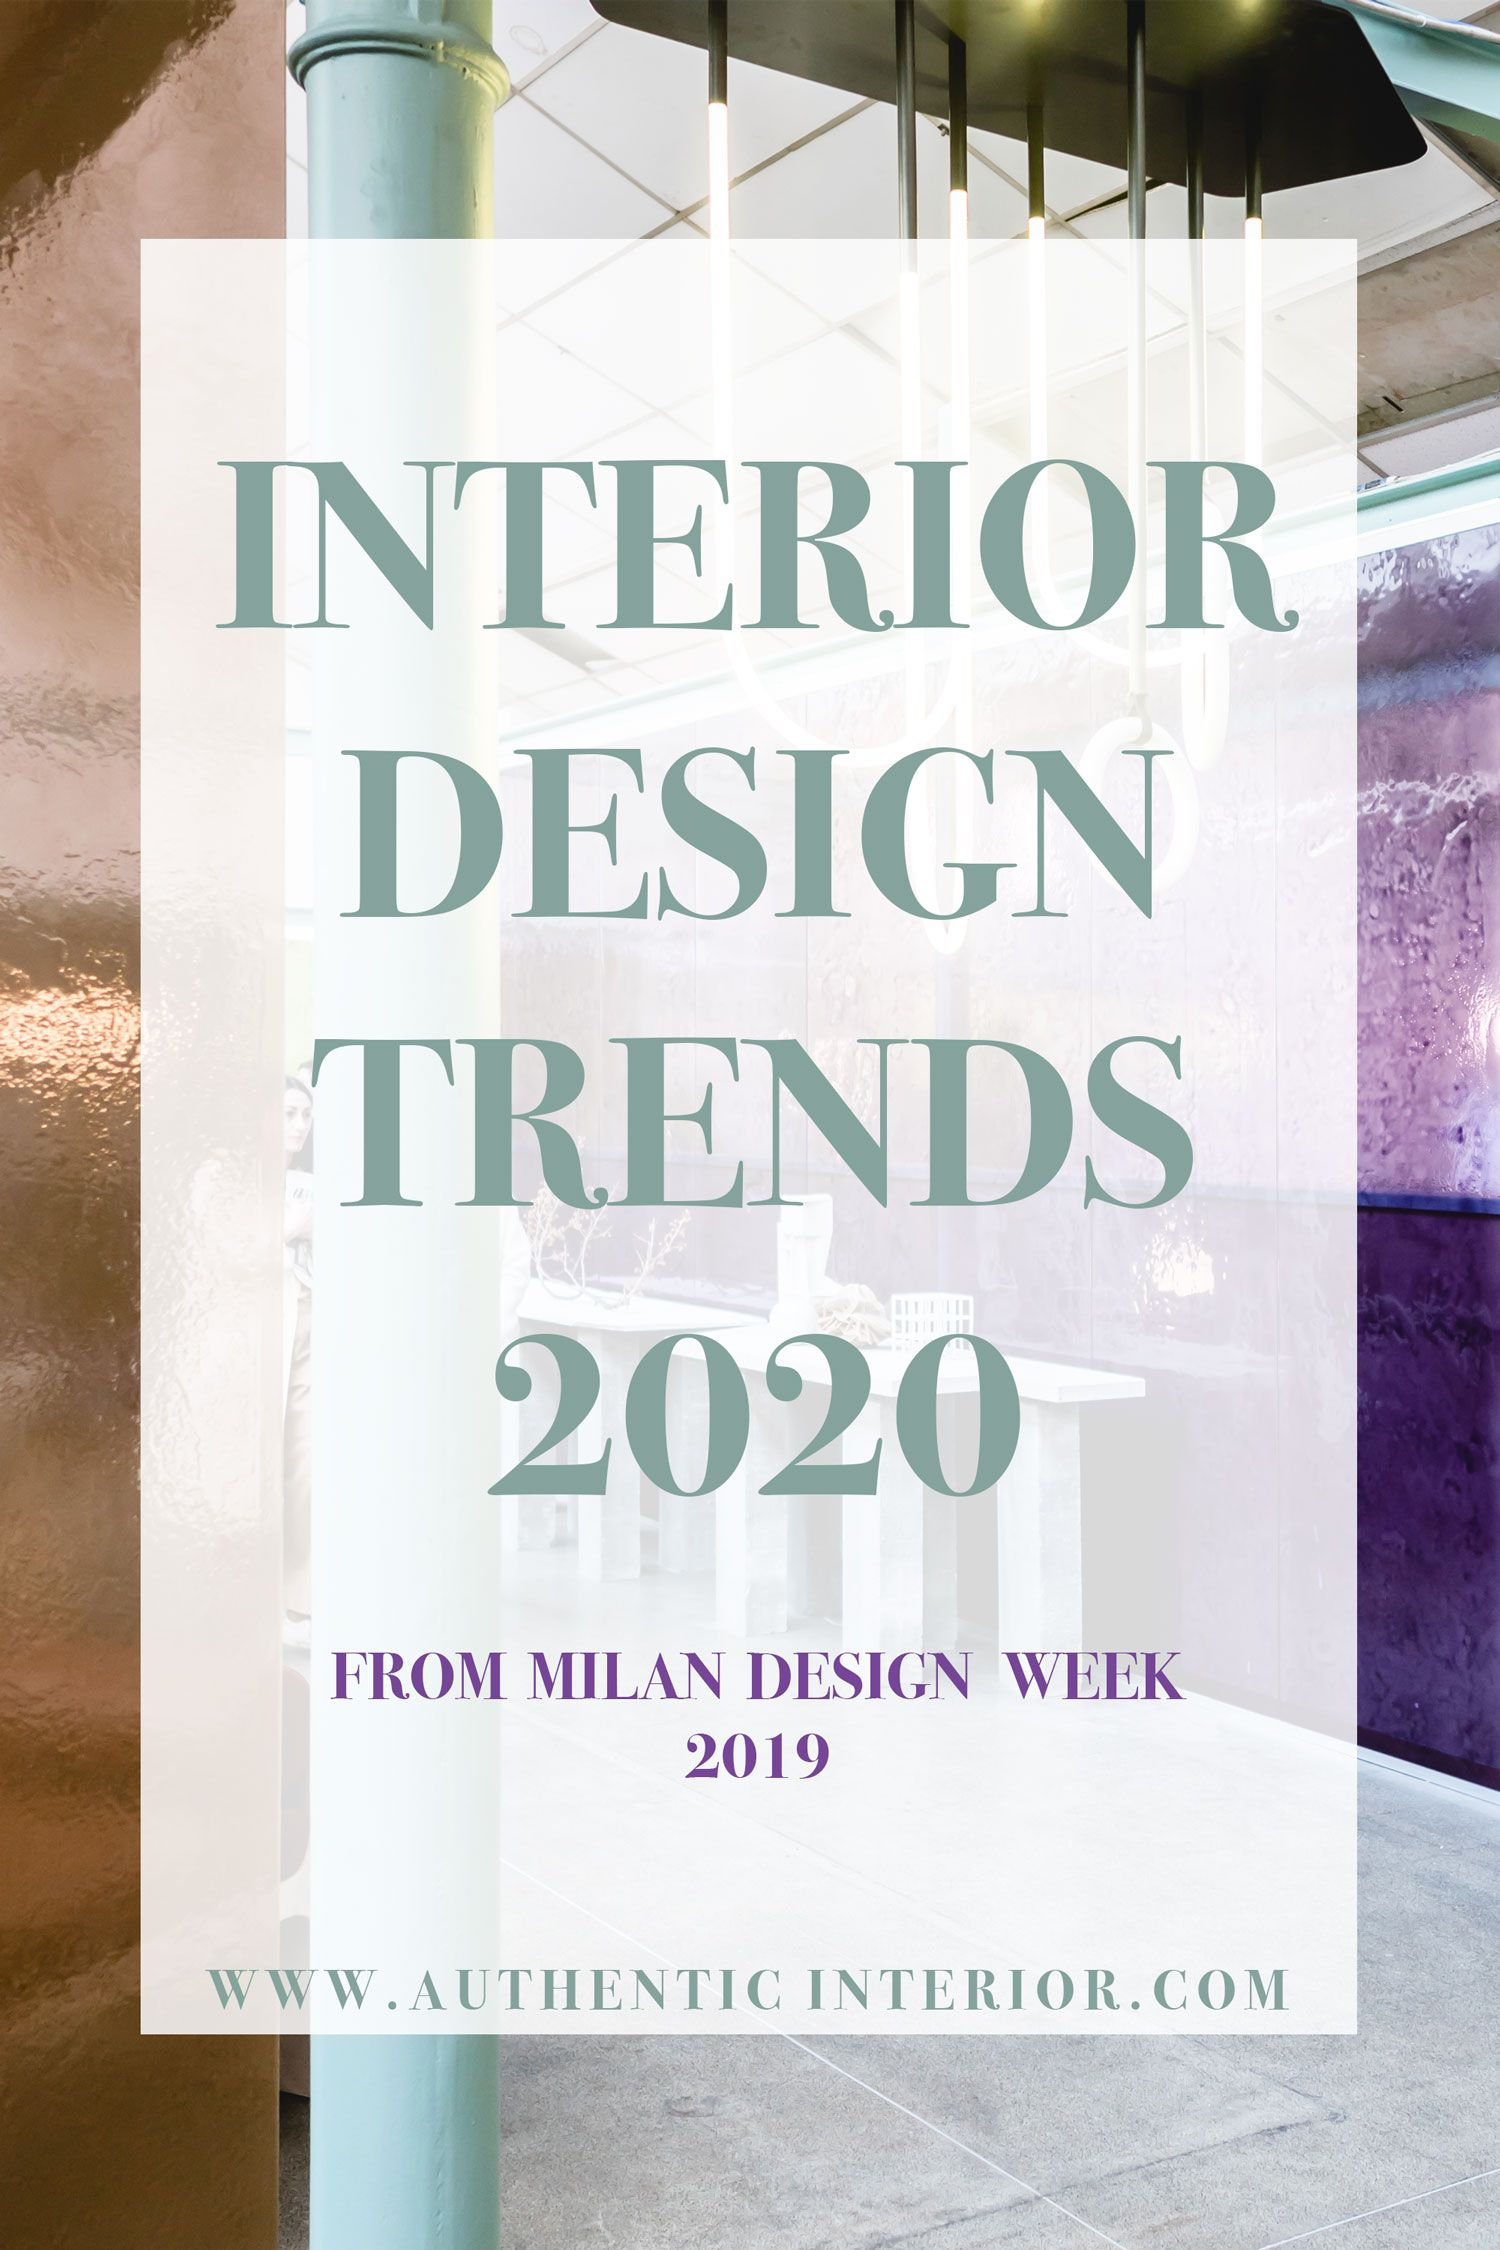 Interior Design Trends For 2020 From Milan Design Week 2019 With